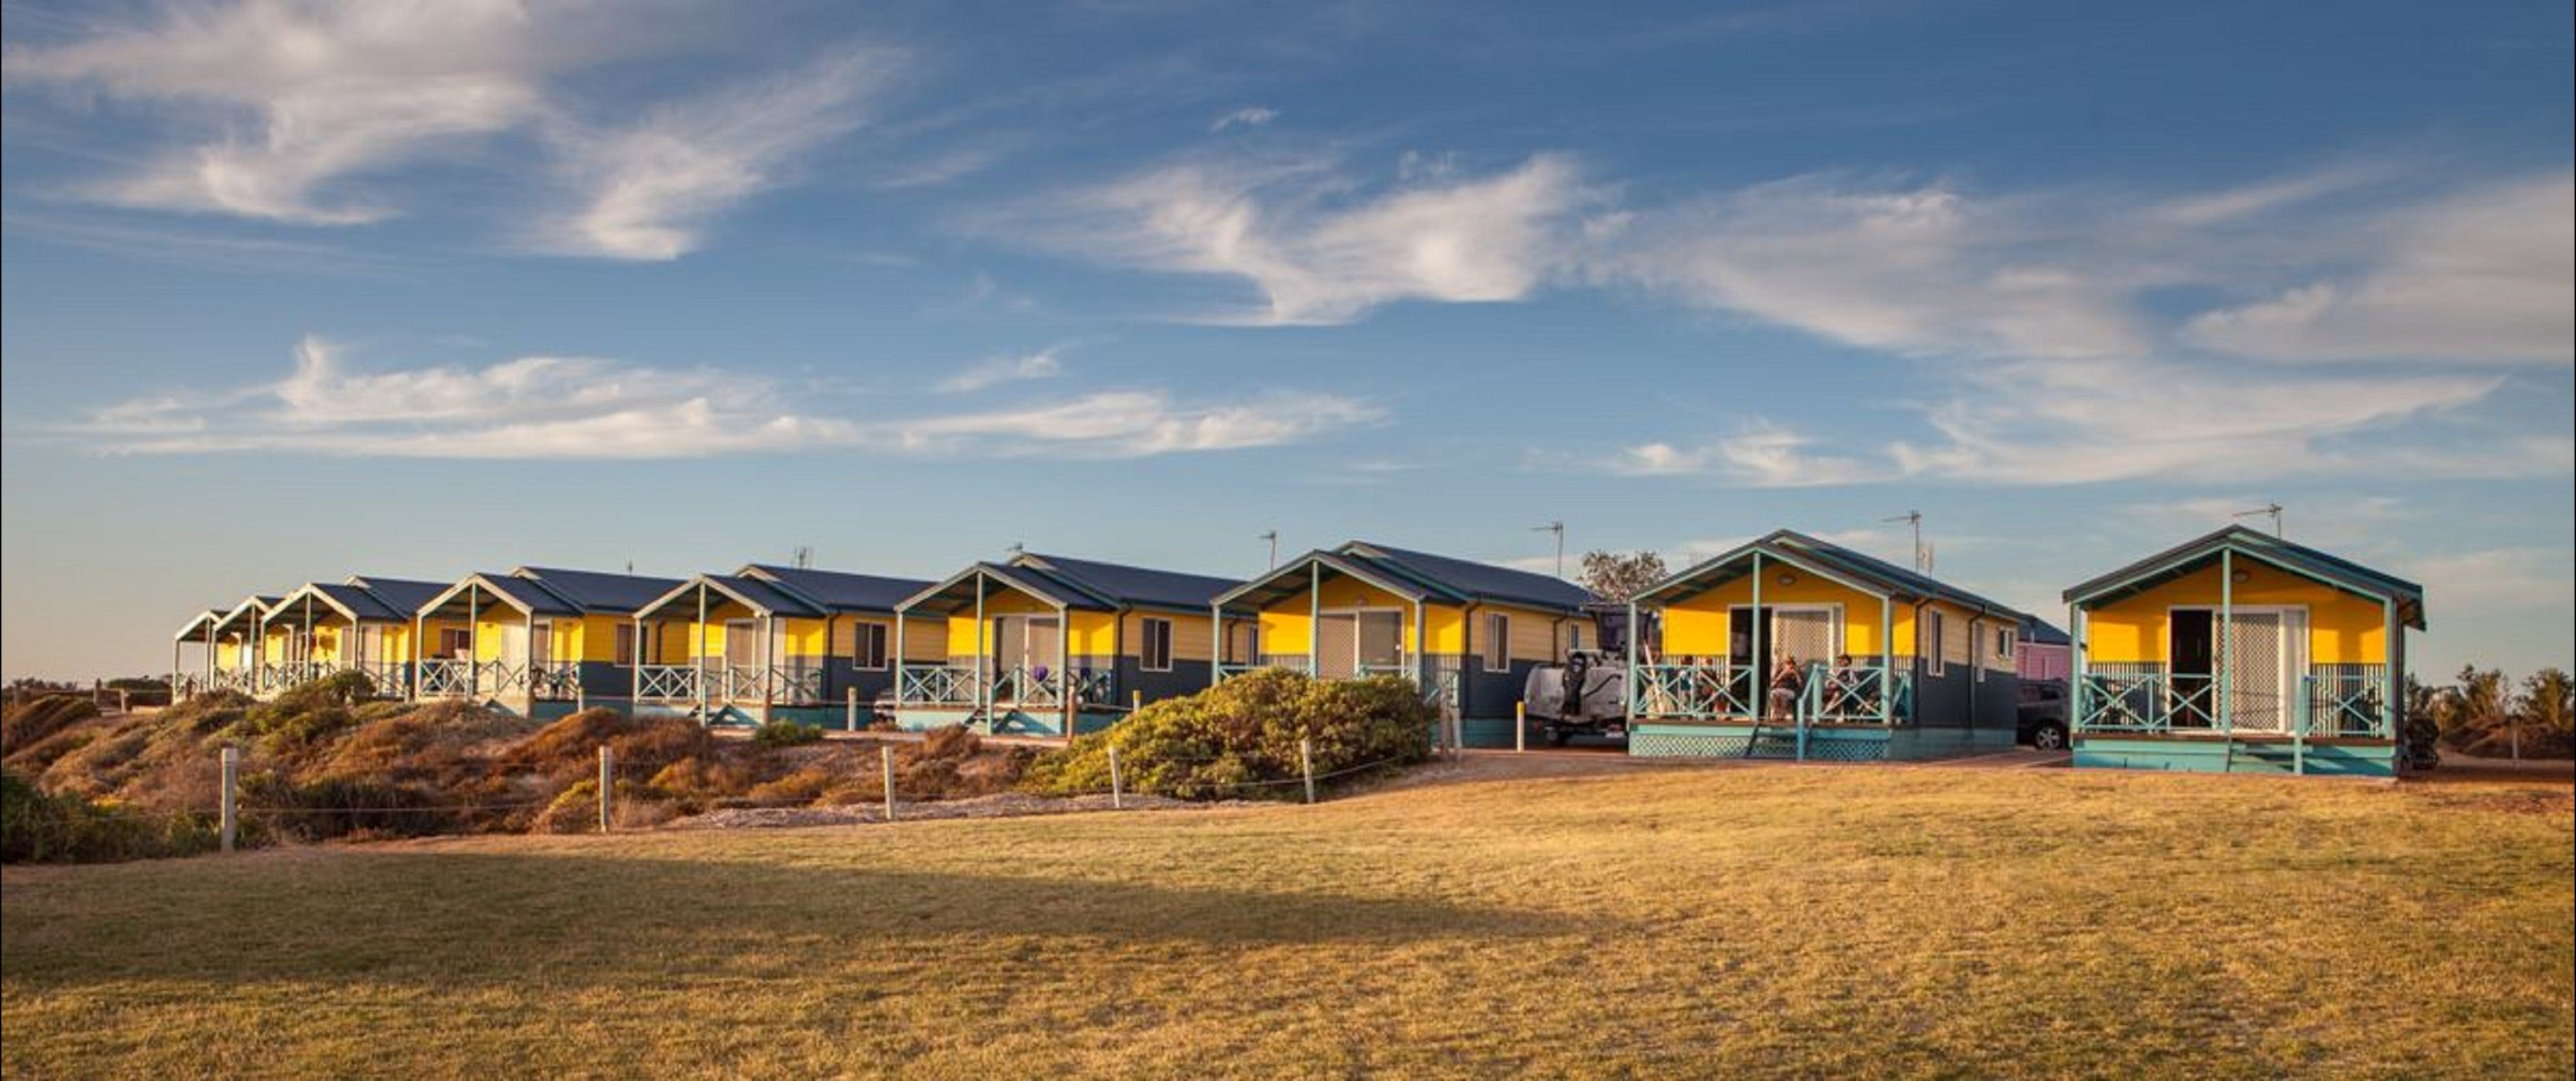 Dongara Tourist Park - WA Accommodation